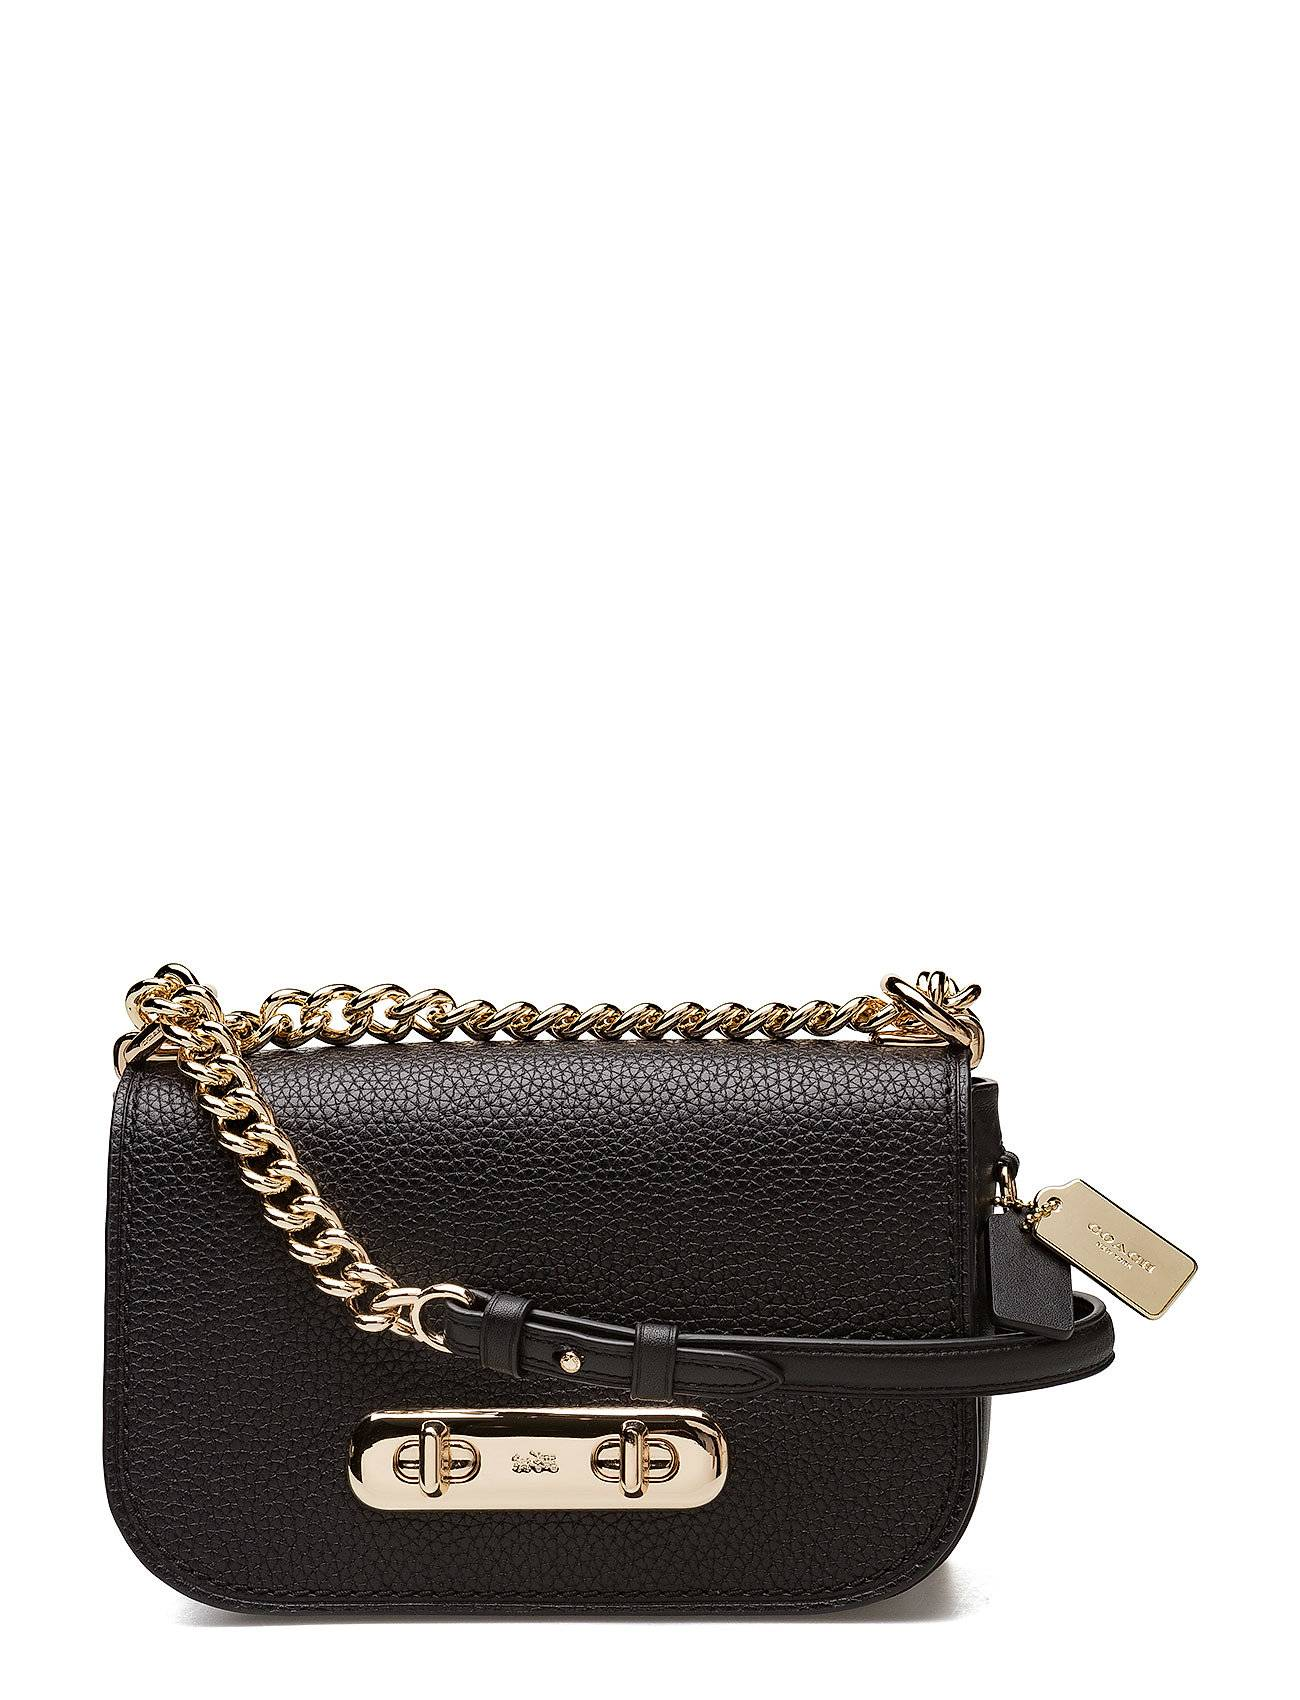 Coach Pebbled Leather Refresh Coach Swagger 20 Shoulder Bag